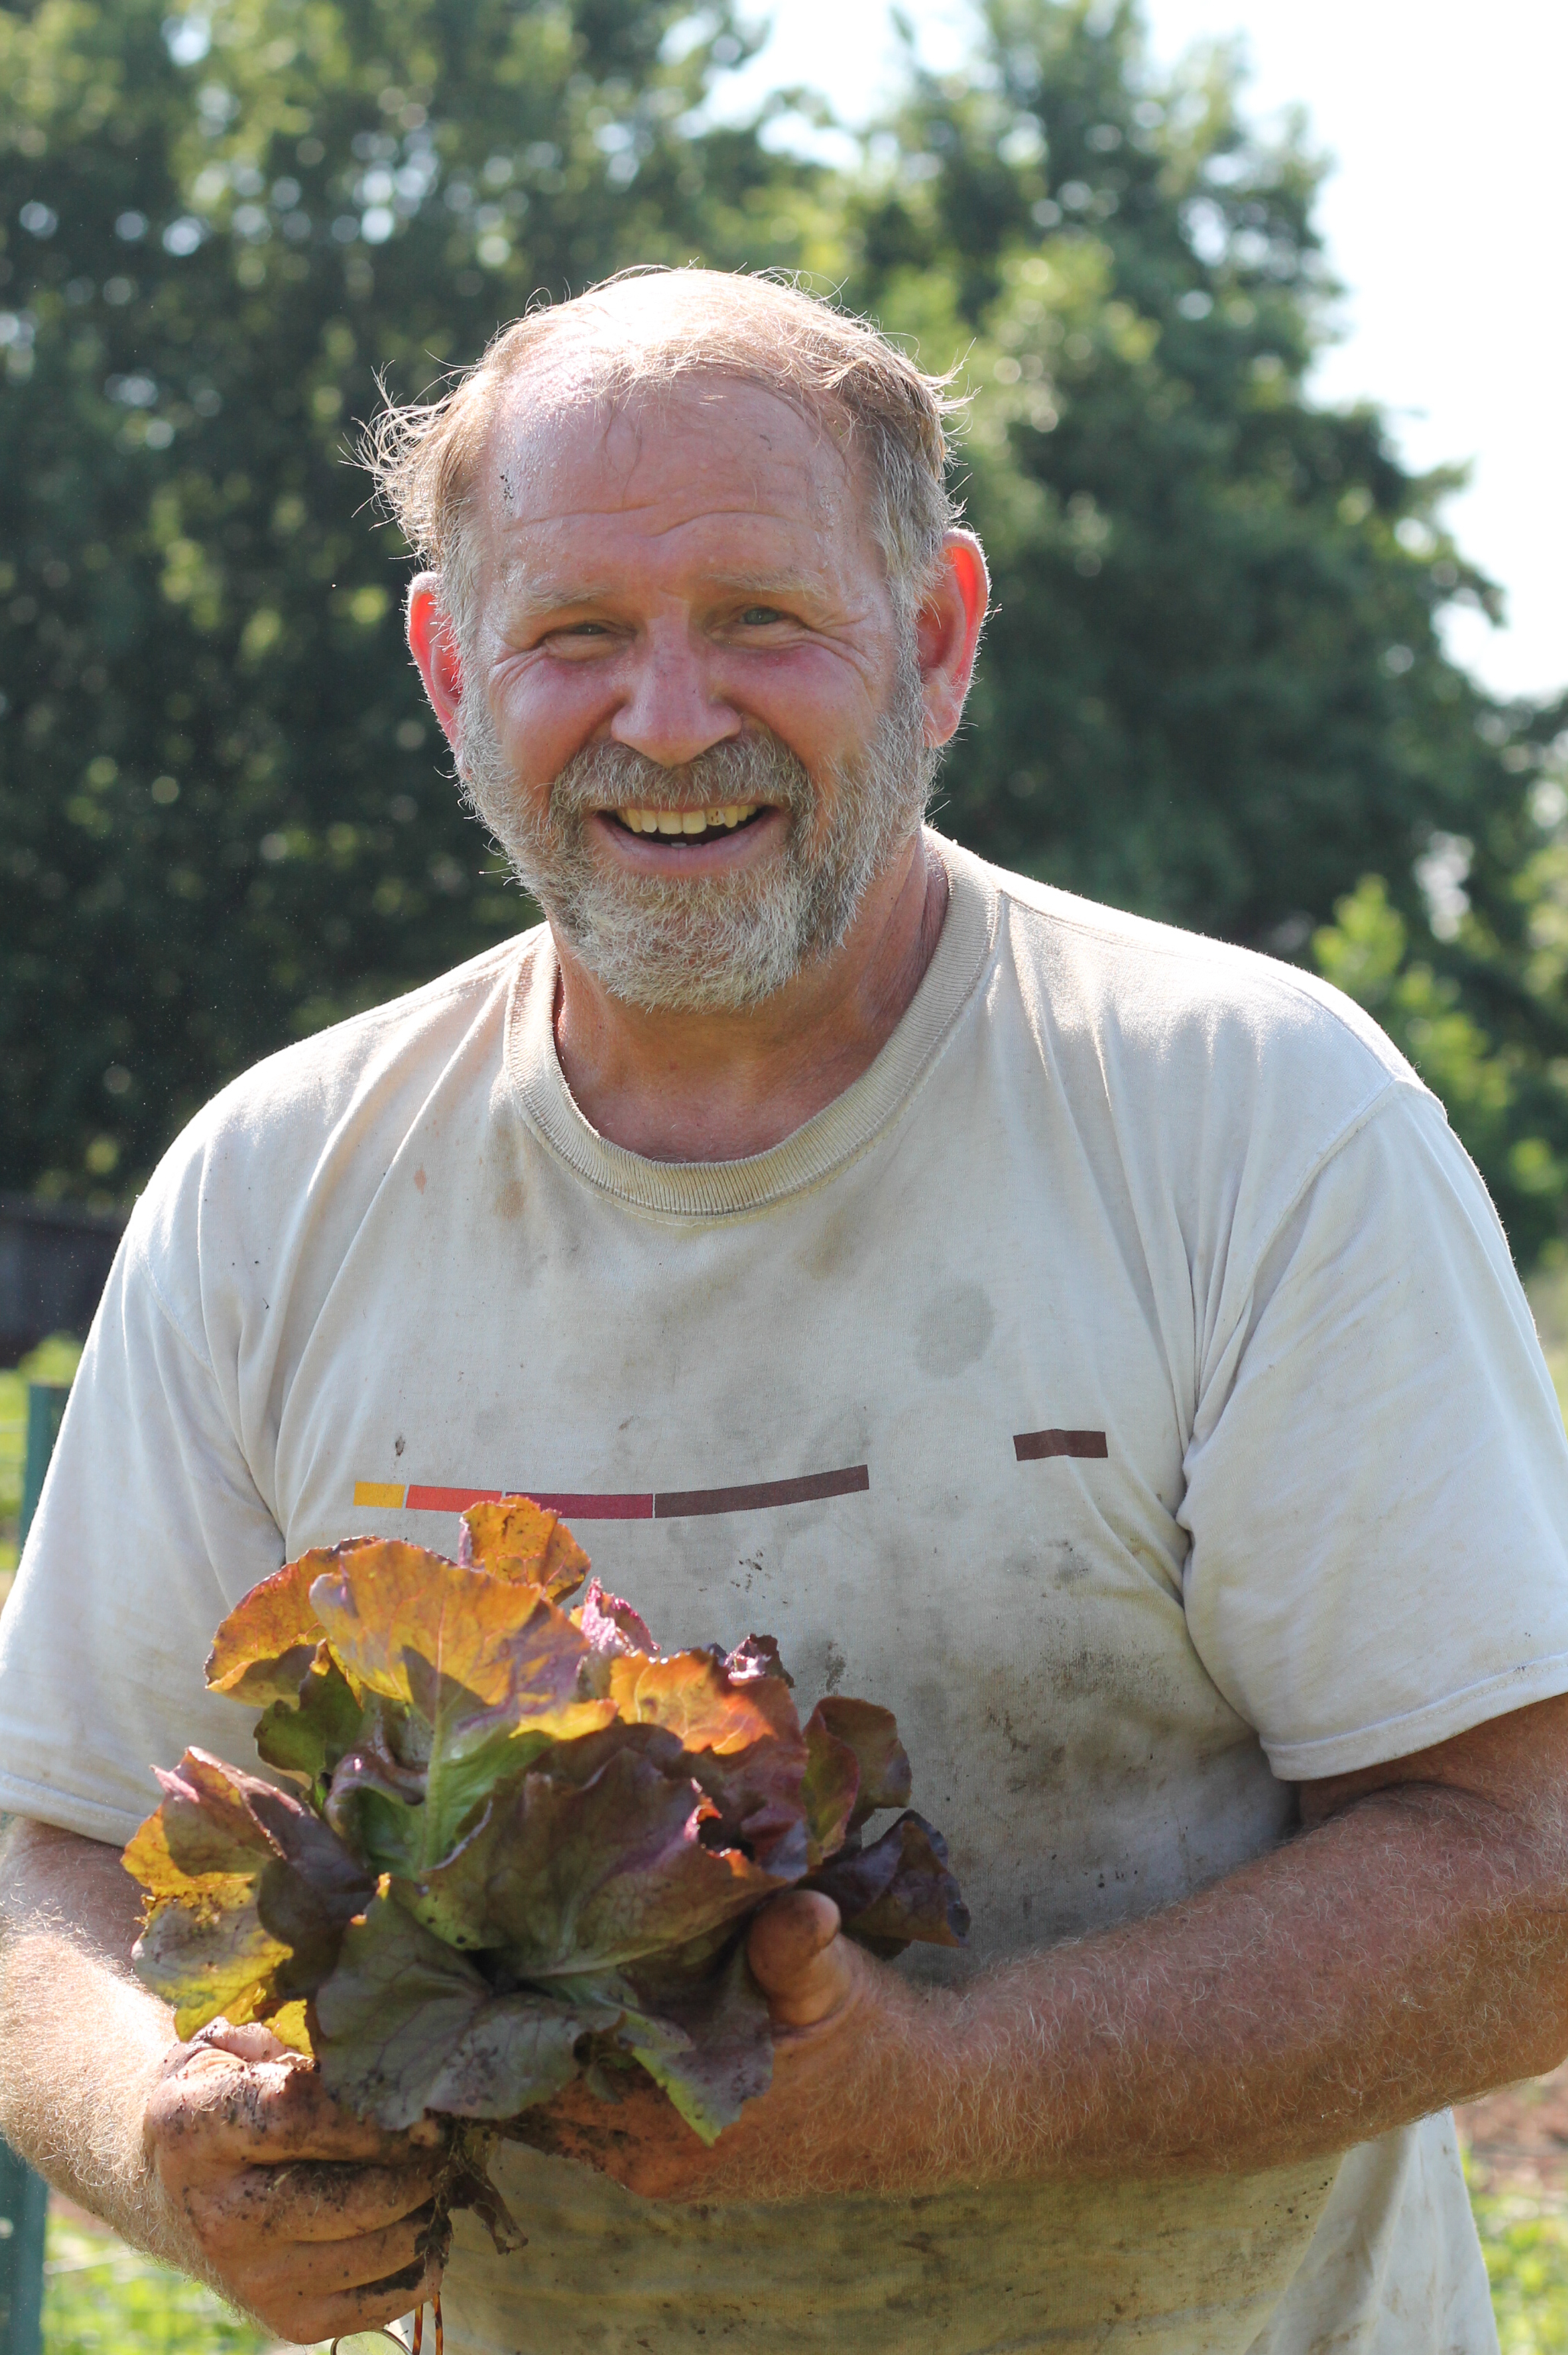 Andy - Andy started Amberland Farm in 2007 in his backyard in Upper Southampton, Bucks County, Pennsylvania. He was a charter vendor at the Wrightstown Farmers Market for 5 years. His growing space now includes the old community gardens at Bryn Athyn College and hoop houses at Russell Gardens Wholesale. As a 1979 graduate of Delaware Valley University with a BS degree in Ornamental Horticulture, farming and gardening come naturally. Andy's passion for growing local nutrient dense produce is rooted in education and lifelong learning.